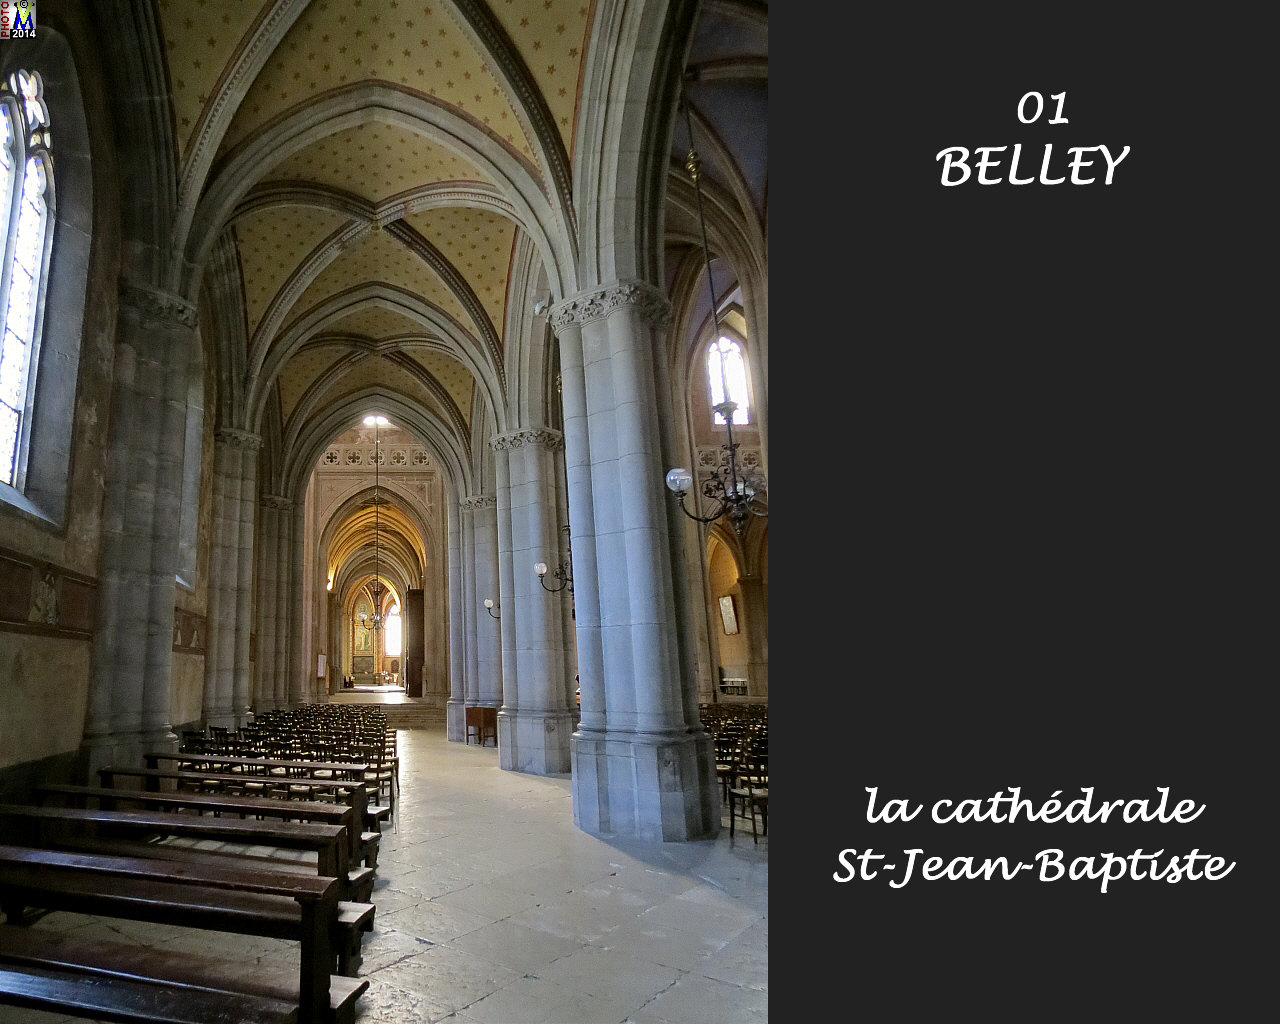 01BELLEY_cathedrale_202.jpg